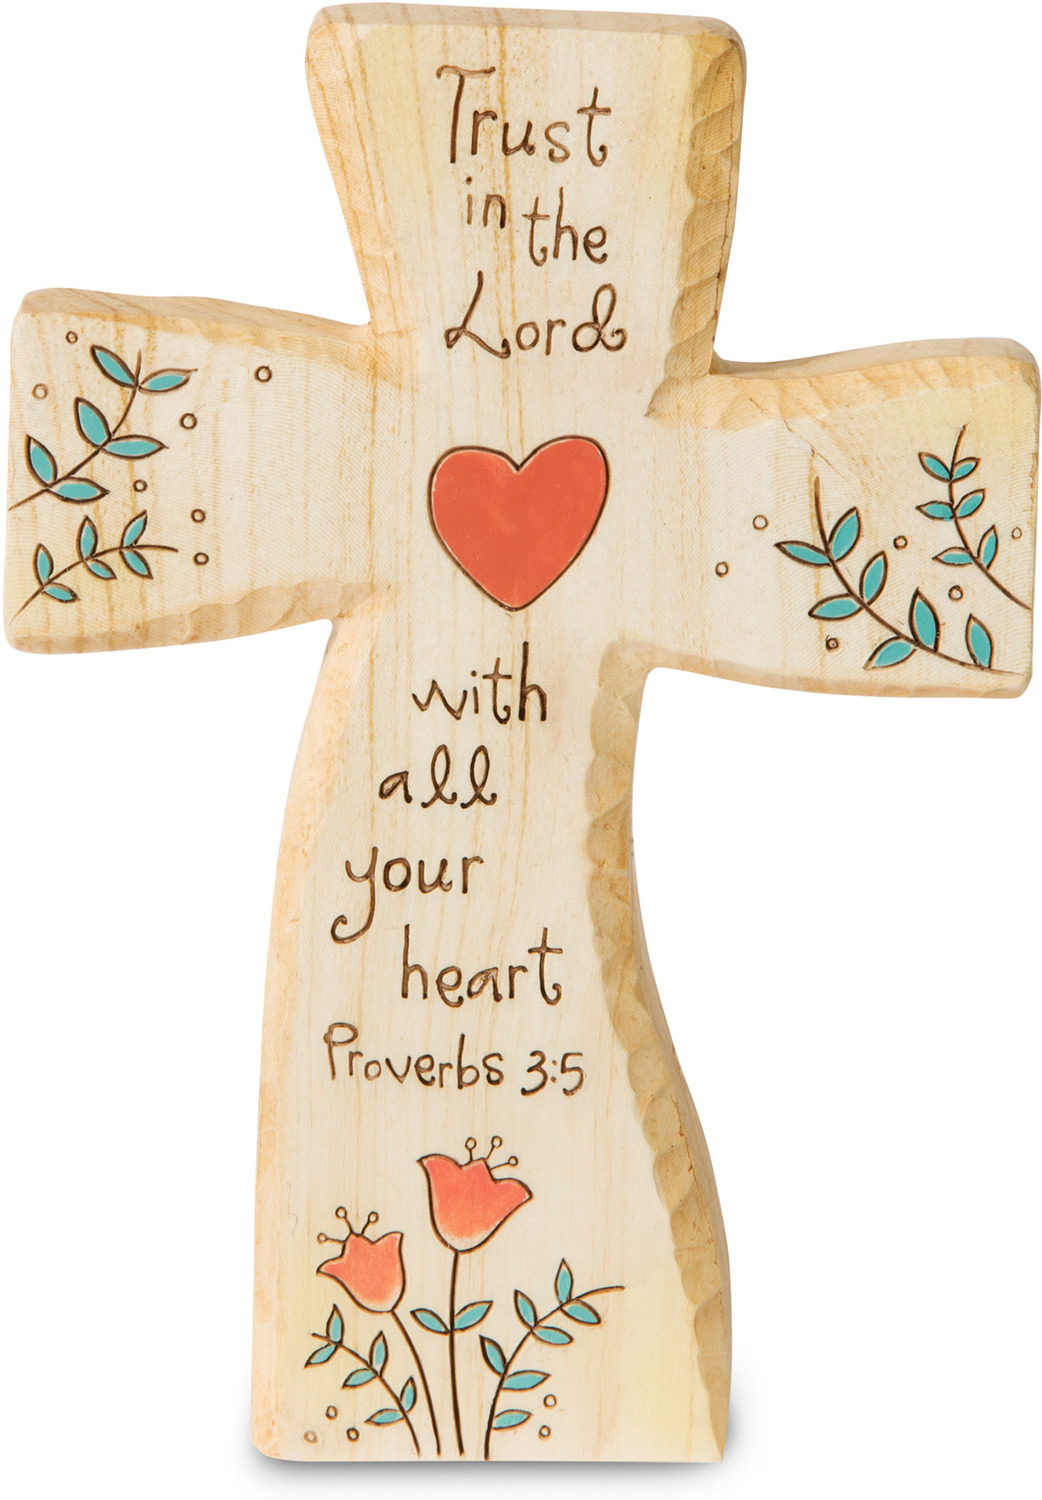 "Trust in the Lord by Heavenly Woods - Trust in the Lord - 5"" Self-Standing Cross Carving"